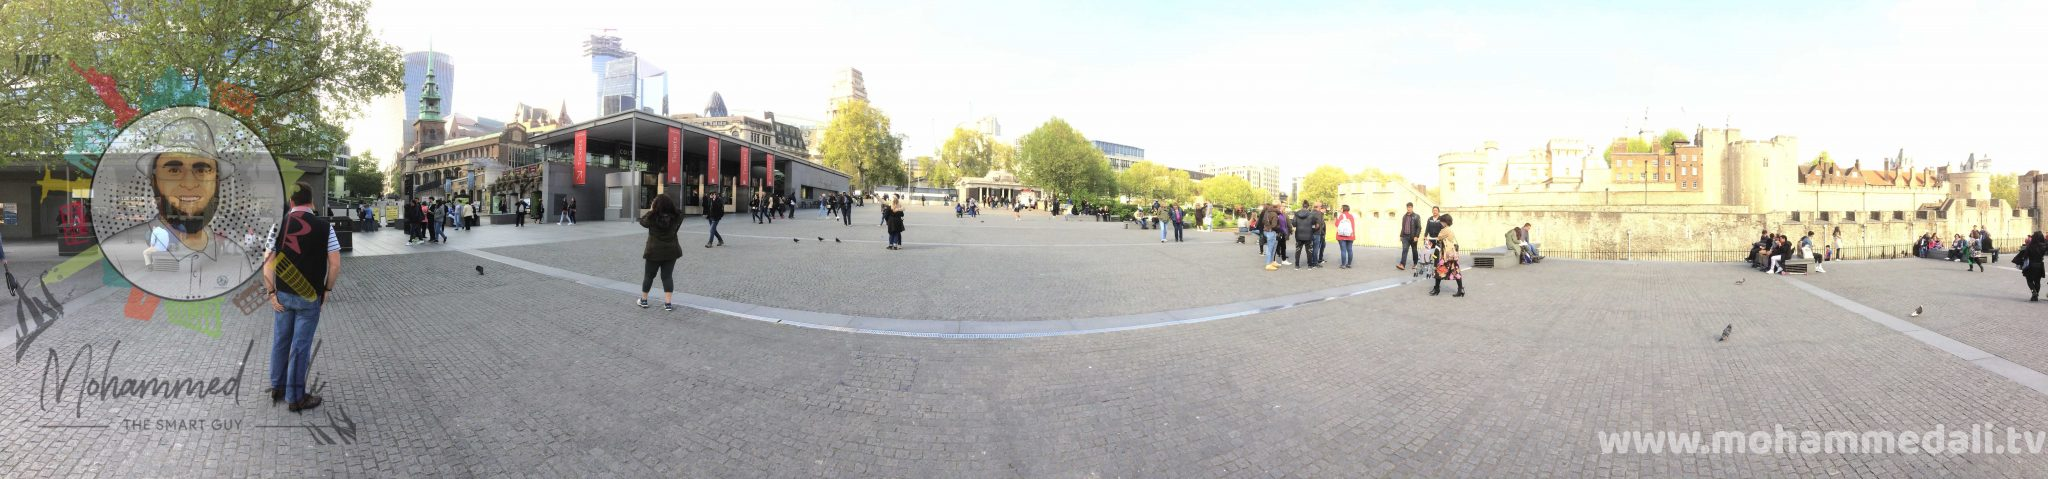 Panoramic Tour pf the Tower of London